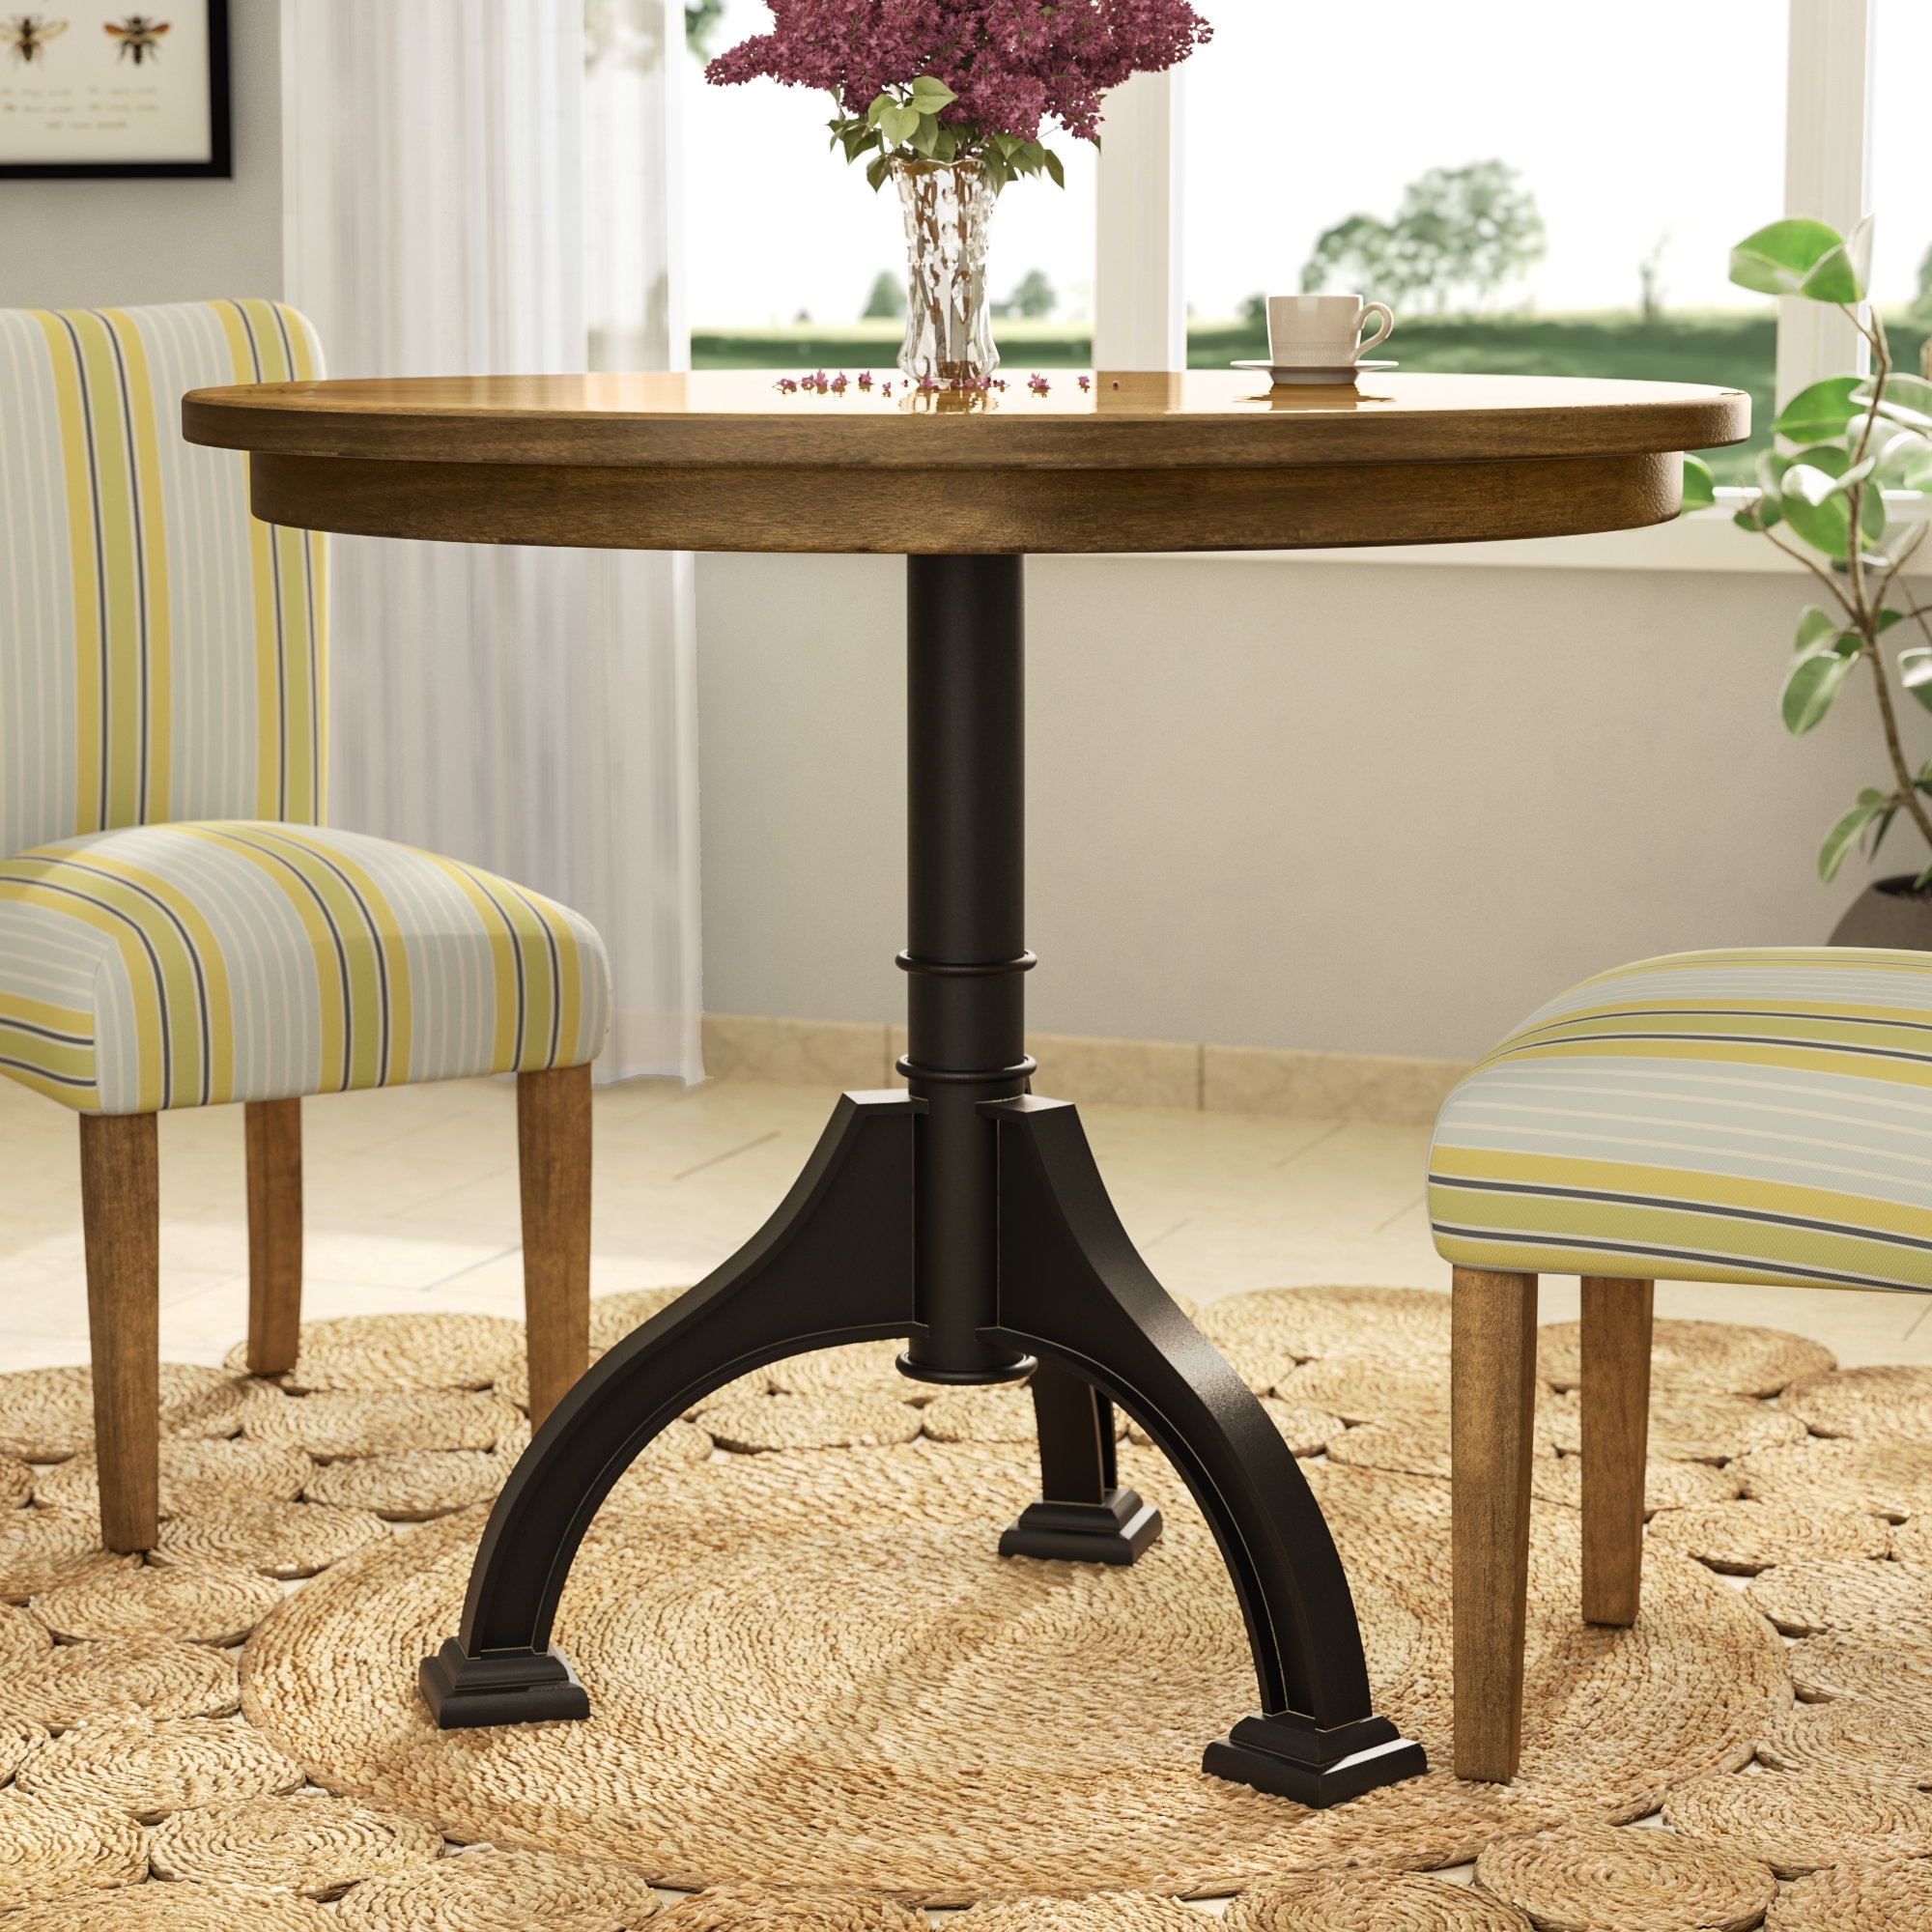 2018 Potomac Adjustable Coffee Tables For Trent Austin Design Brownwood Dining Table & Reviews (View 6 of 20)